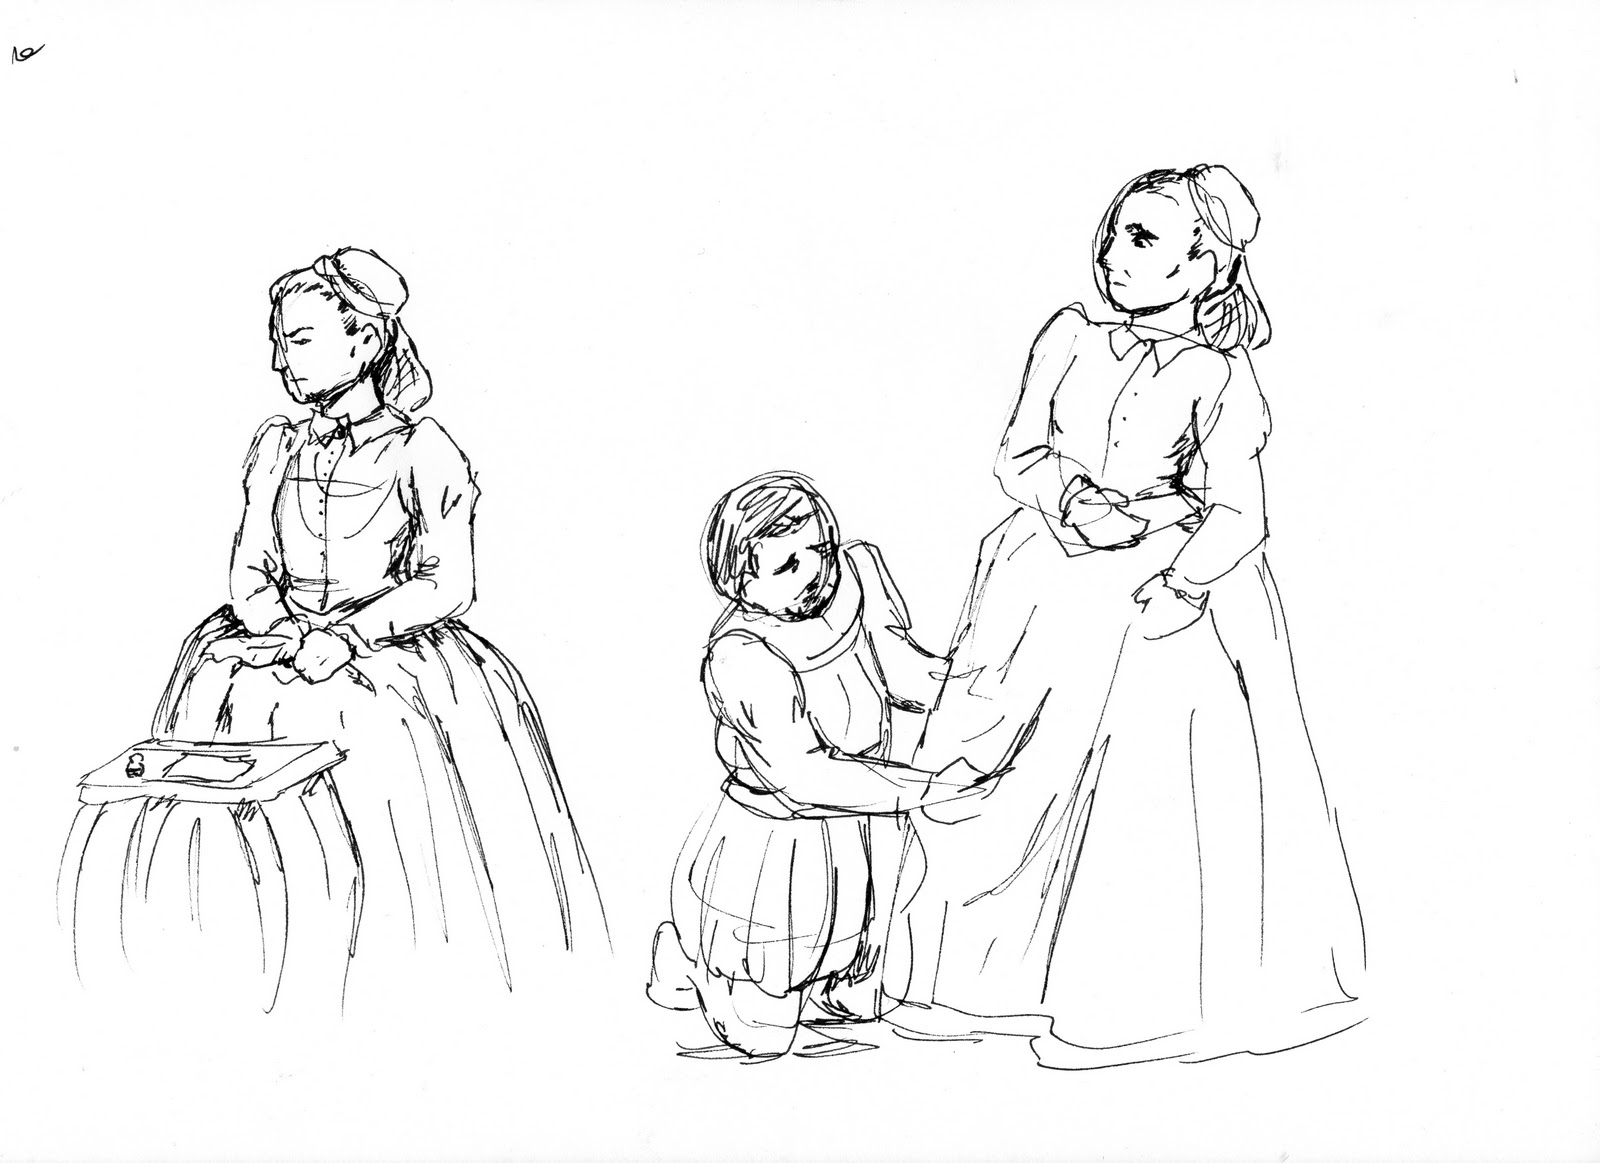 mary and elizabeth coloring pages mary visits elizabeth coloring page coloring home pages and coloring mary elizabeth